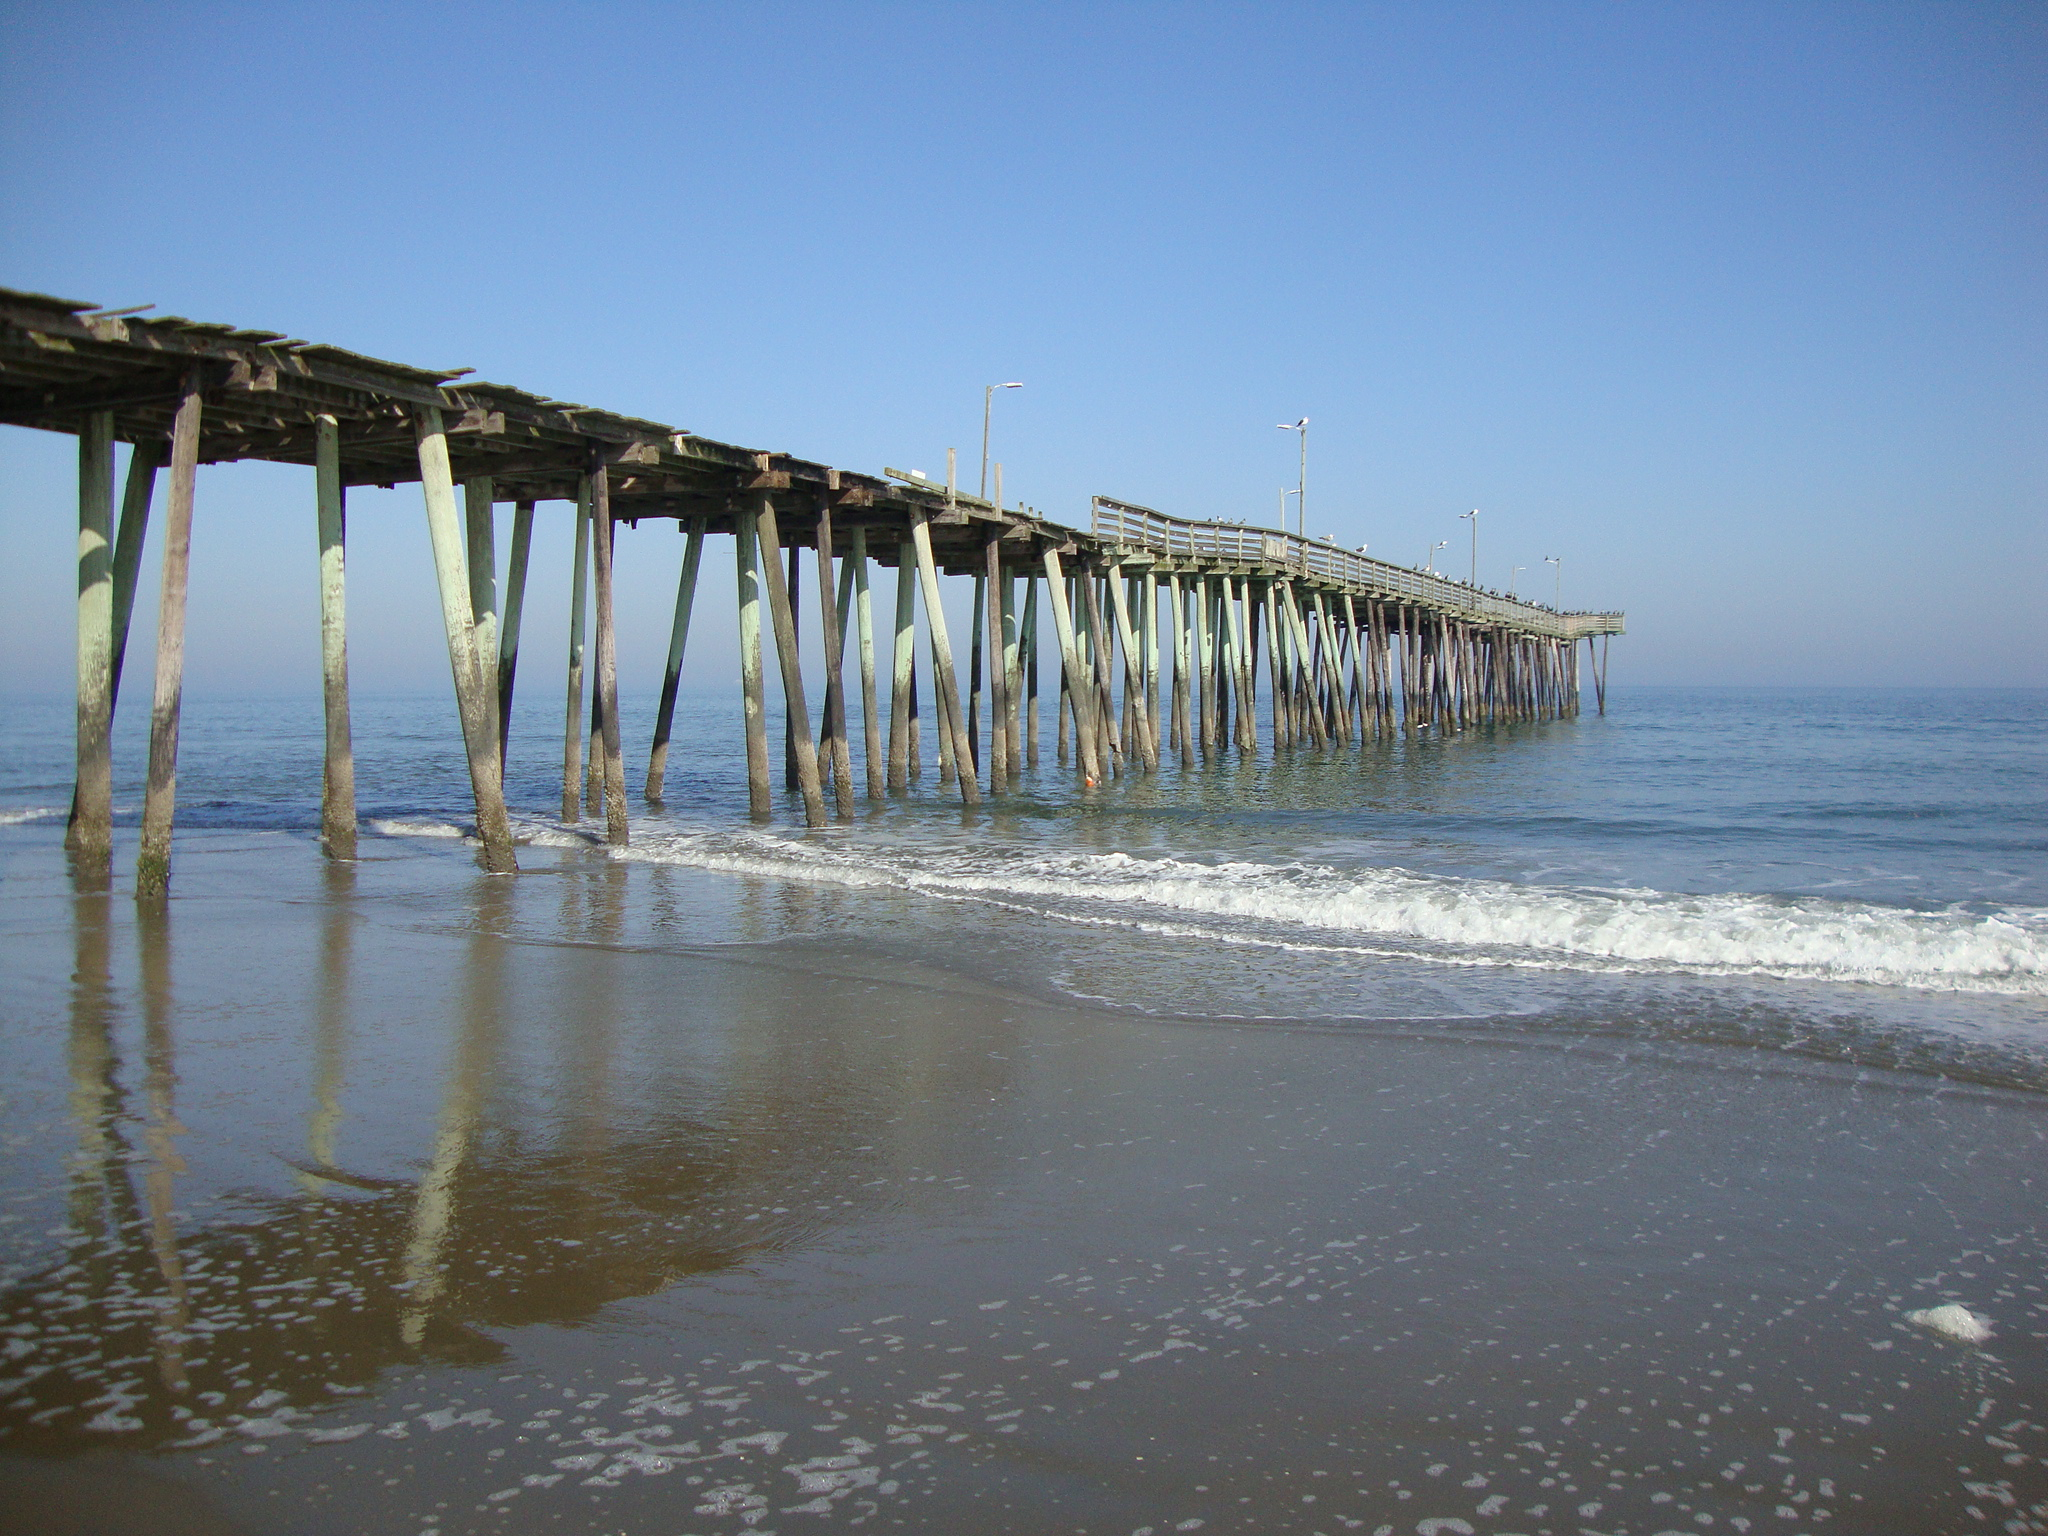 Va Beach Fishing Pier Of Virginia Beach Fishing Pier Virginia Beach Vacation Guide